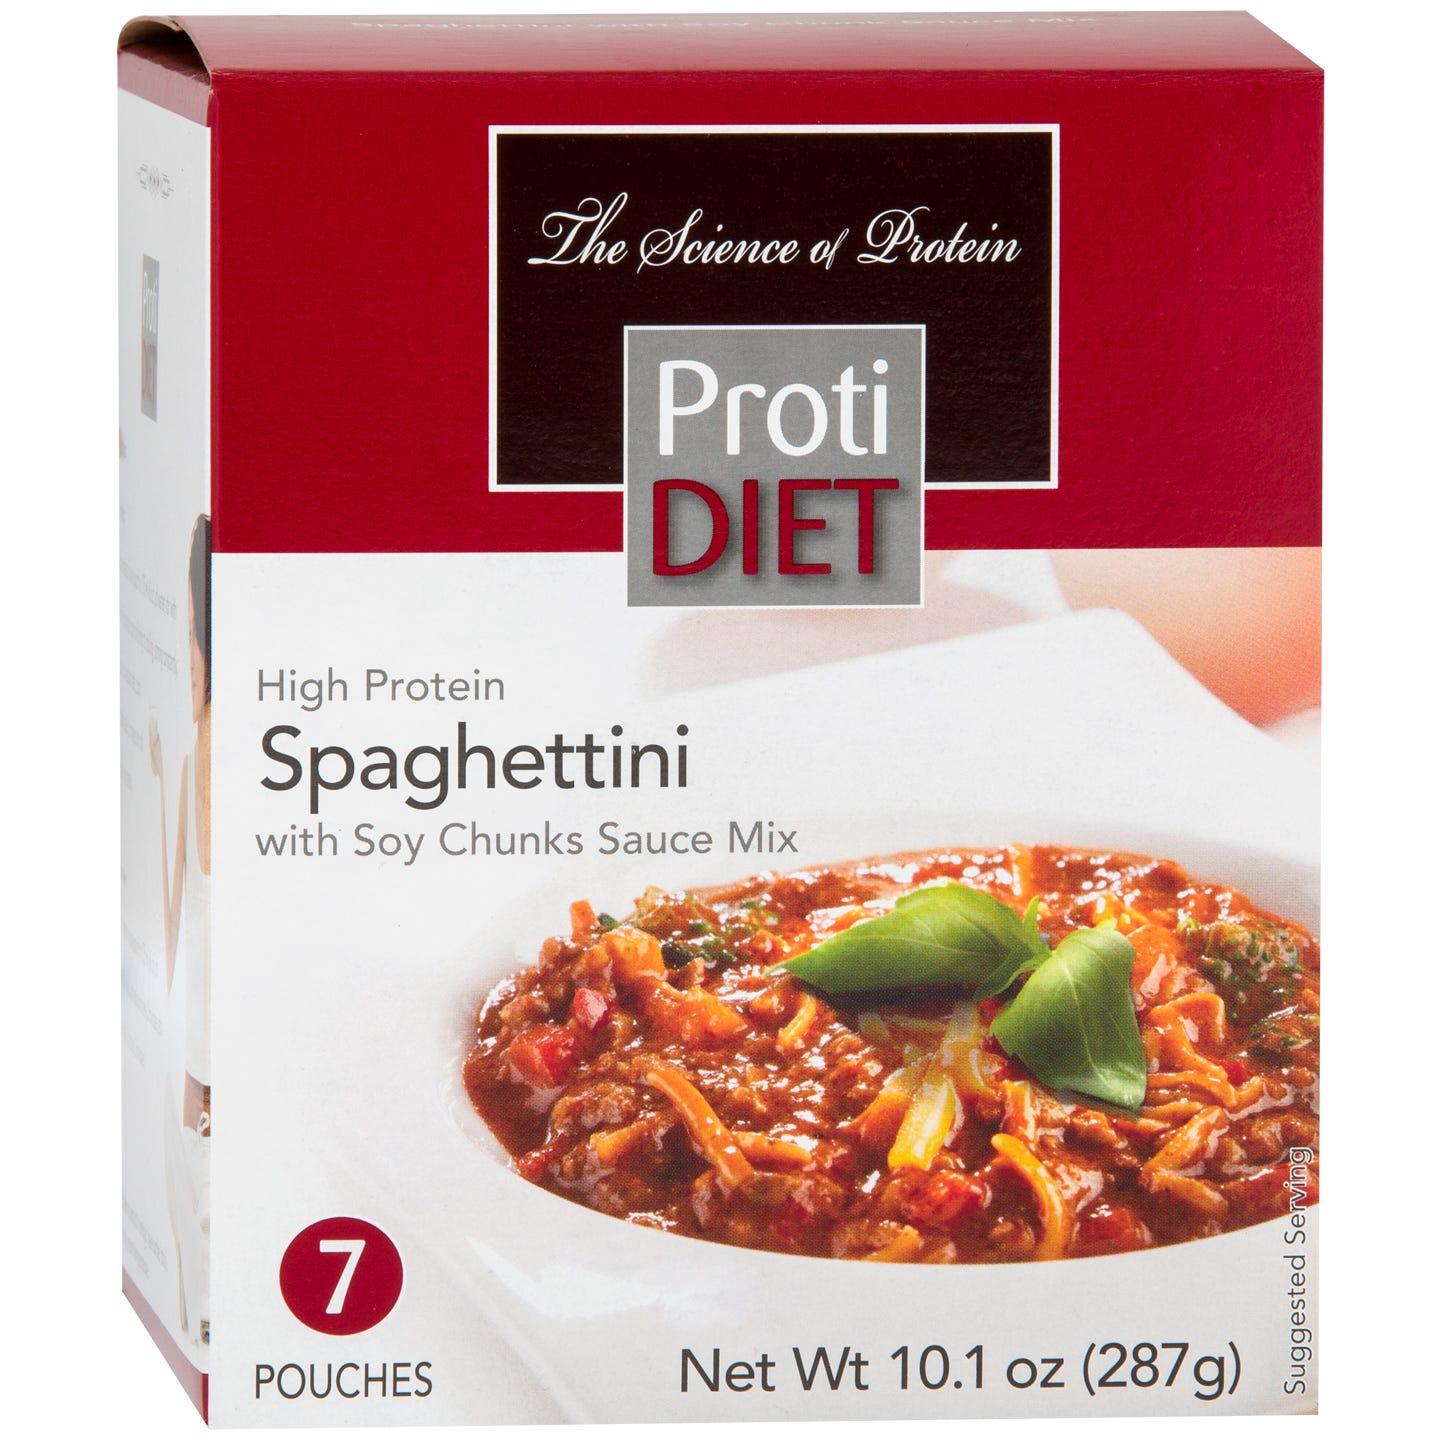 High Protein Spaghettini (7 Ct) - ProtiDiet